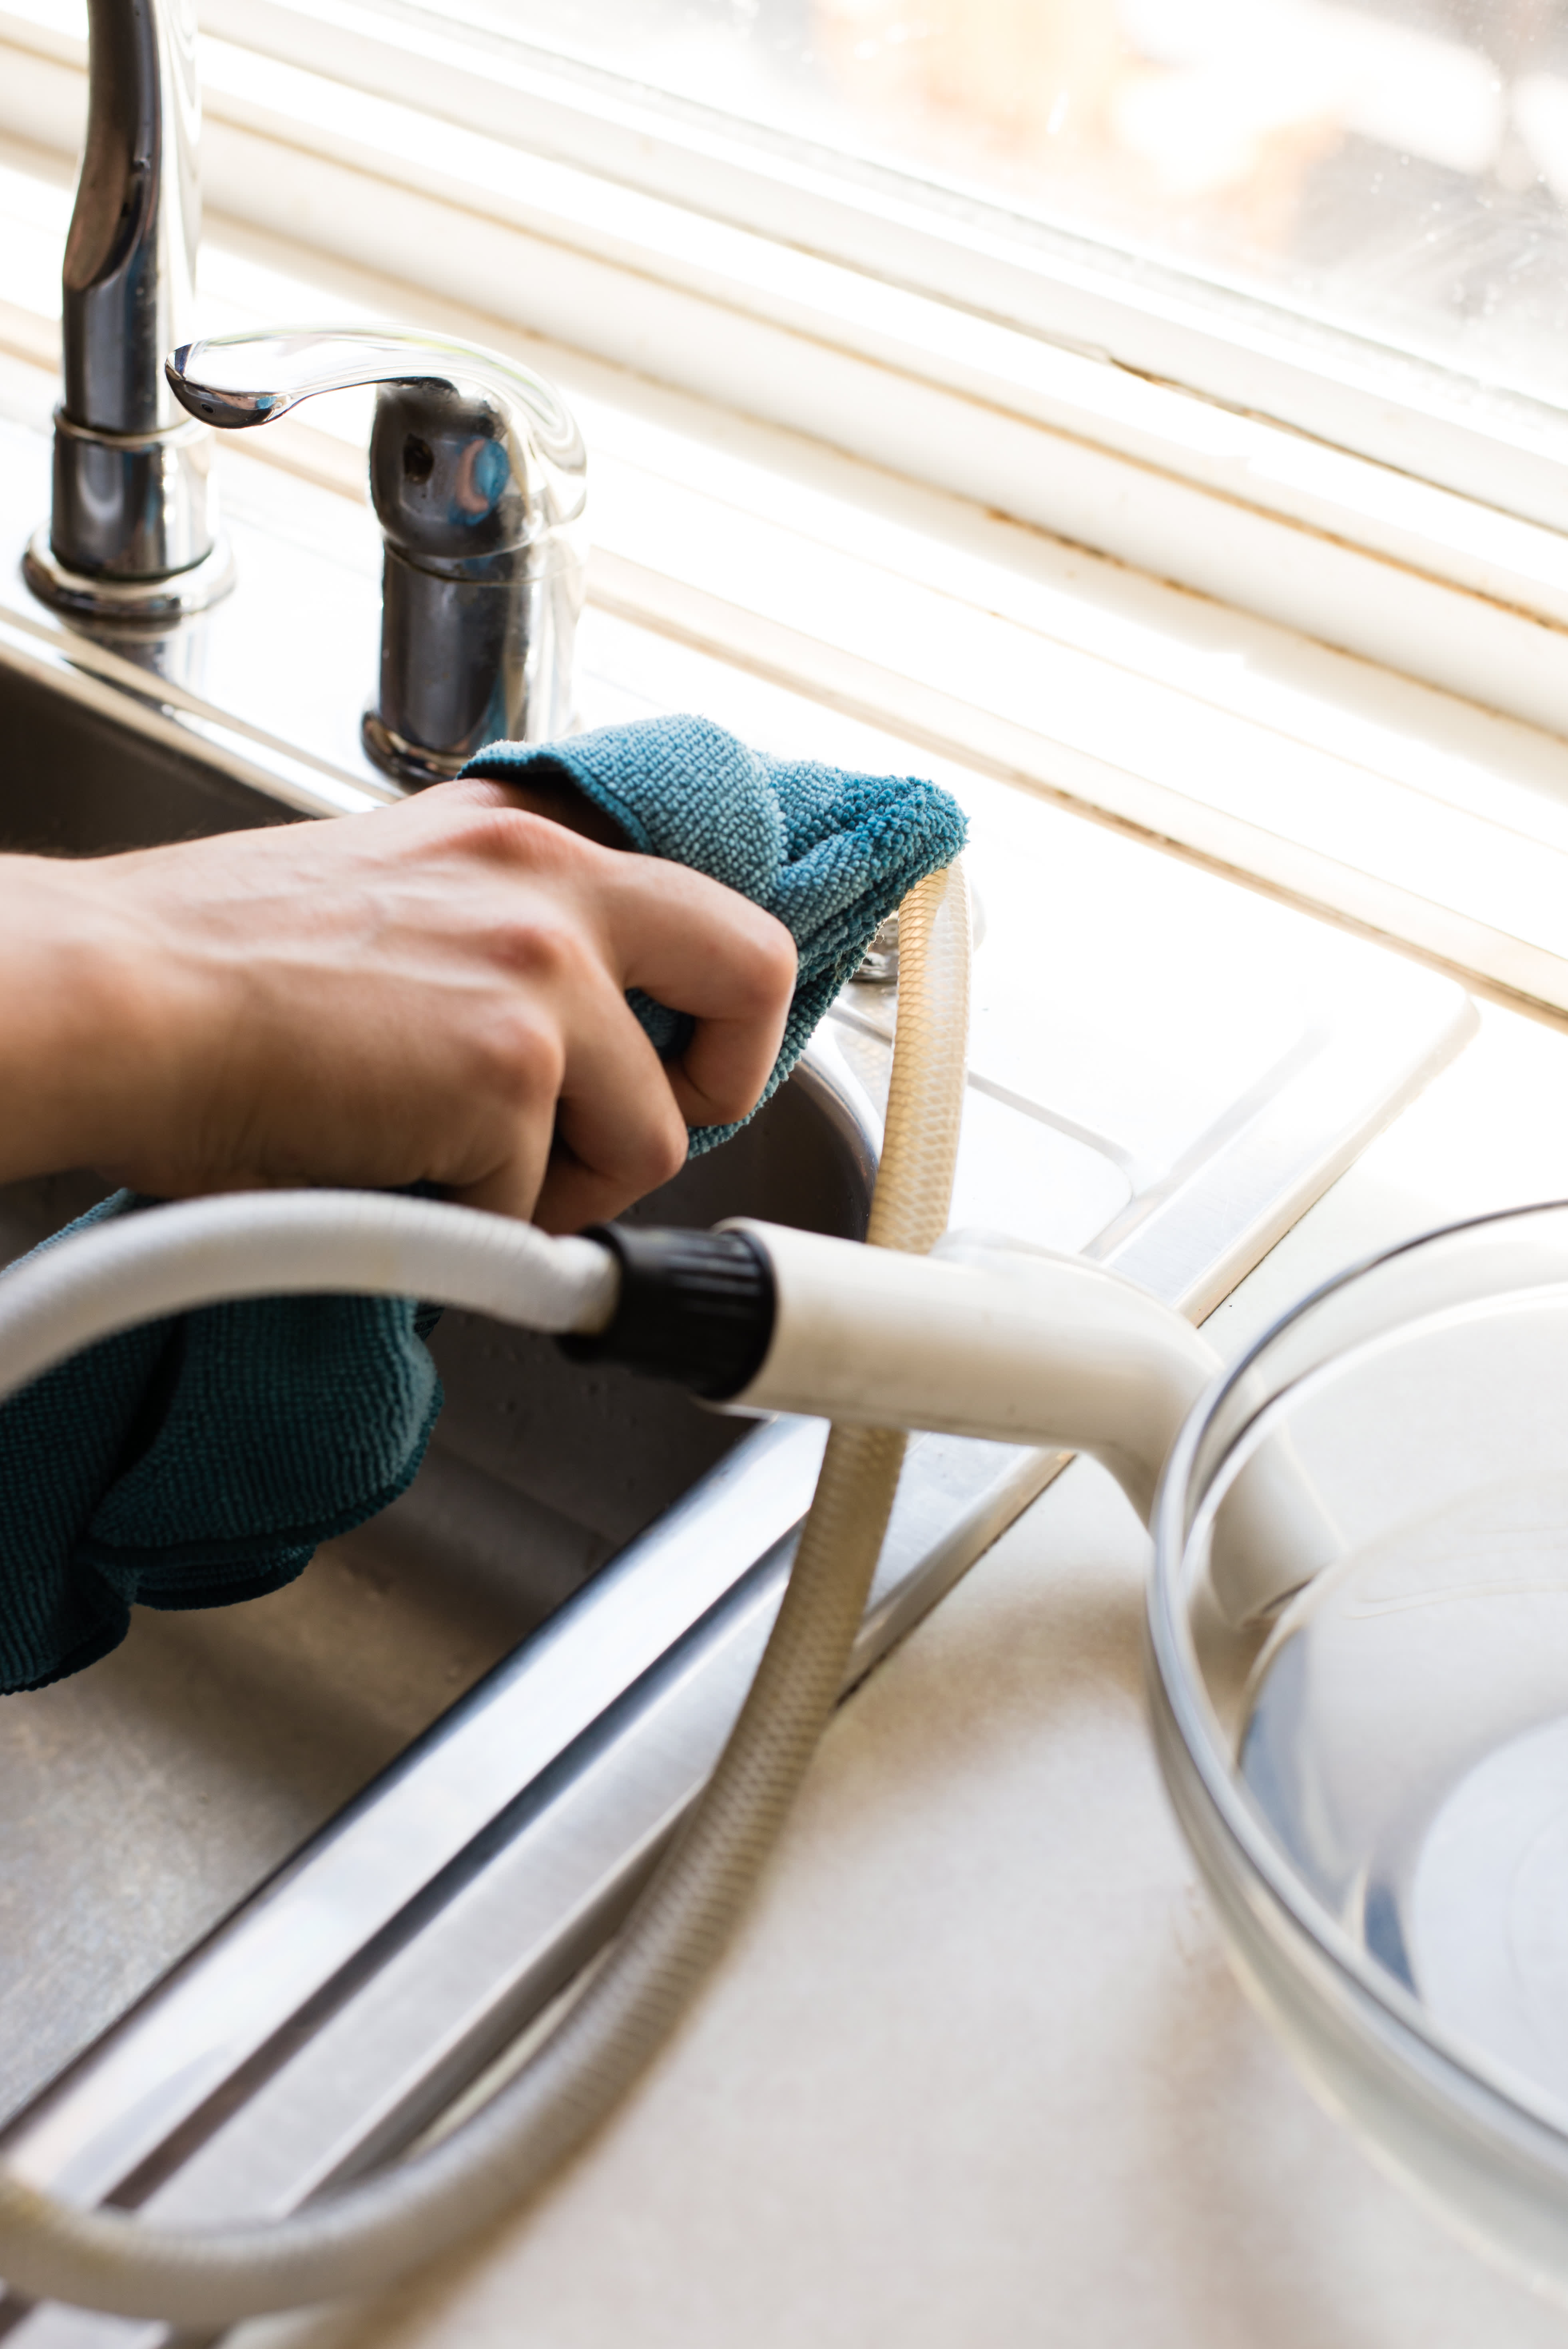 How To Clean Your Kitchen Sink Sprayer: gallery image 3